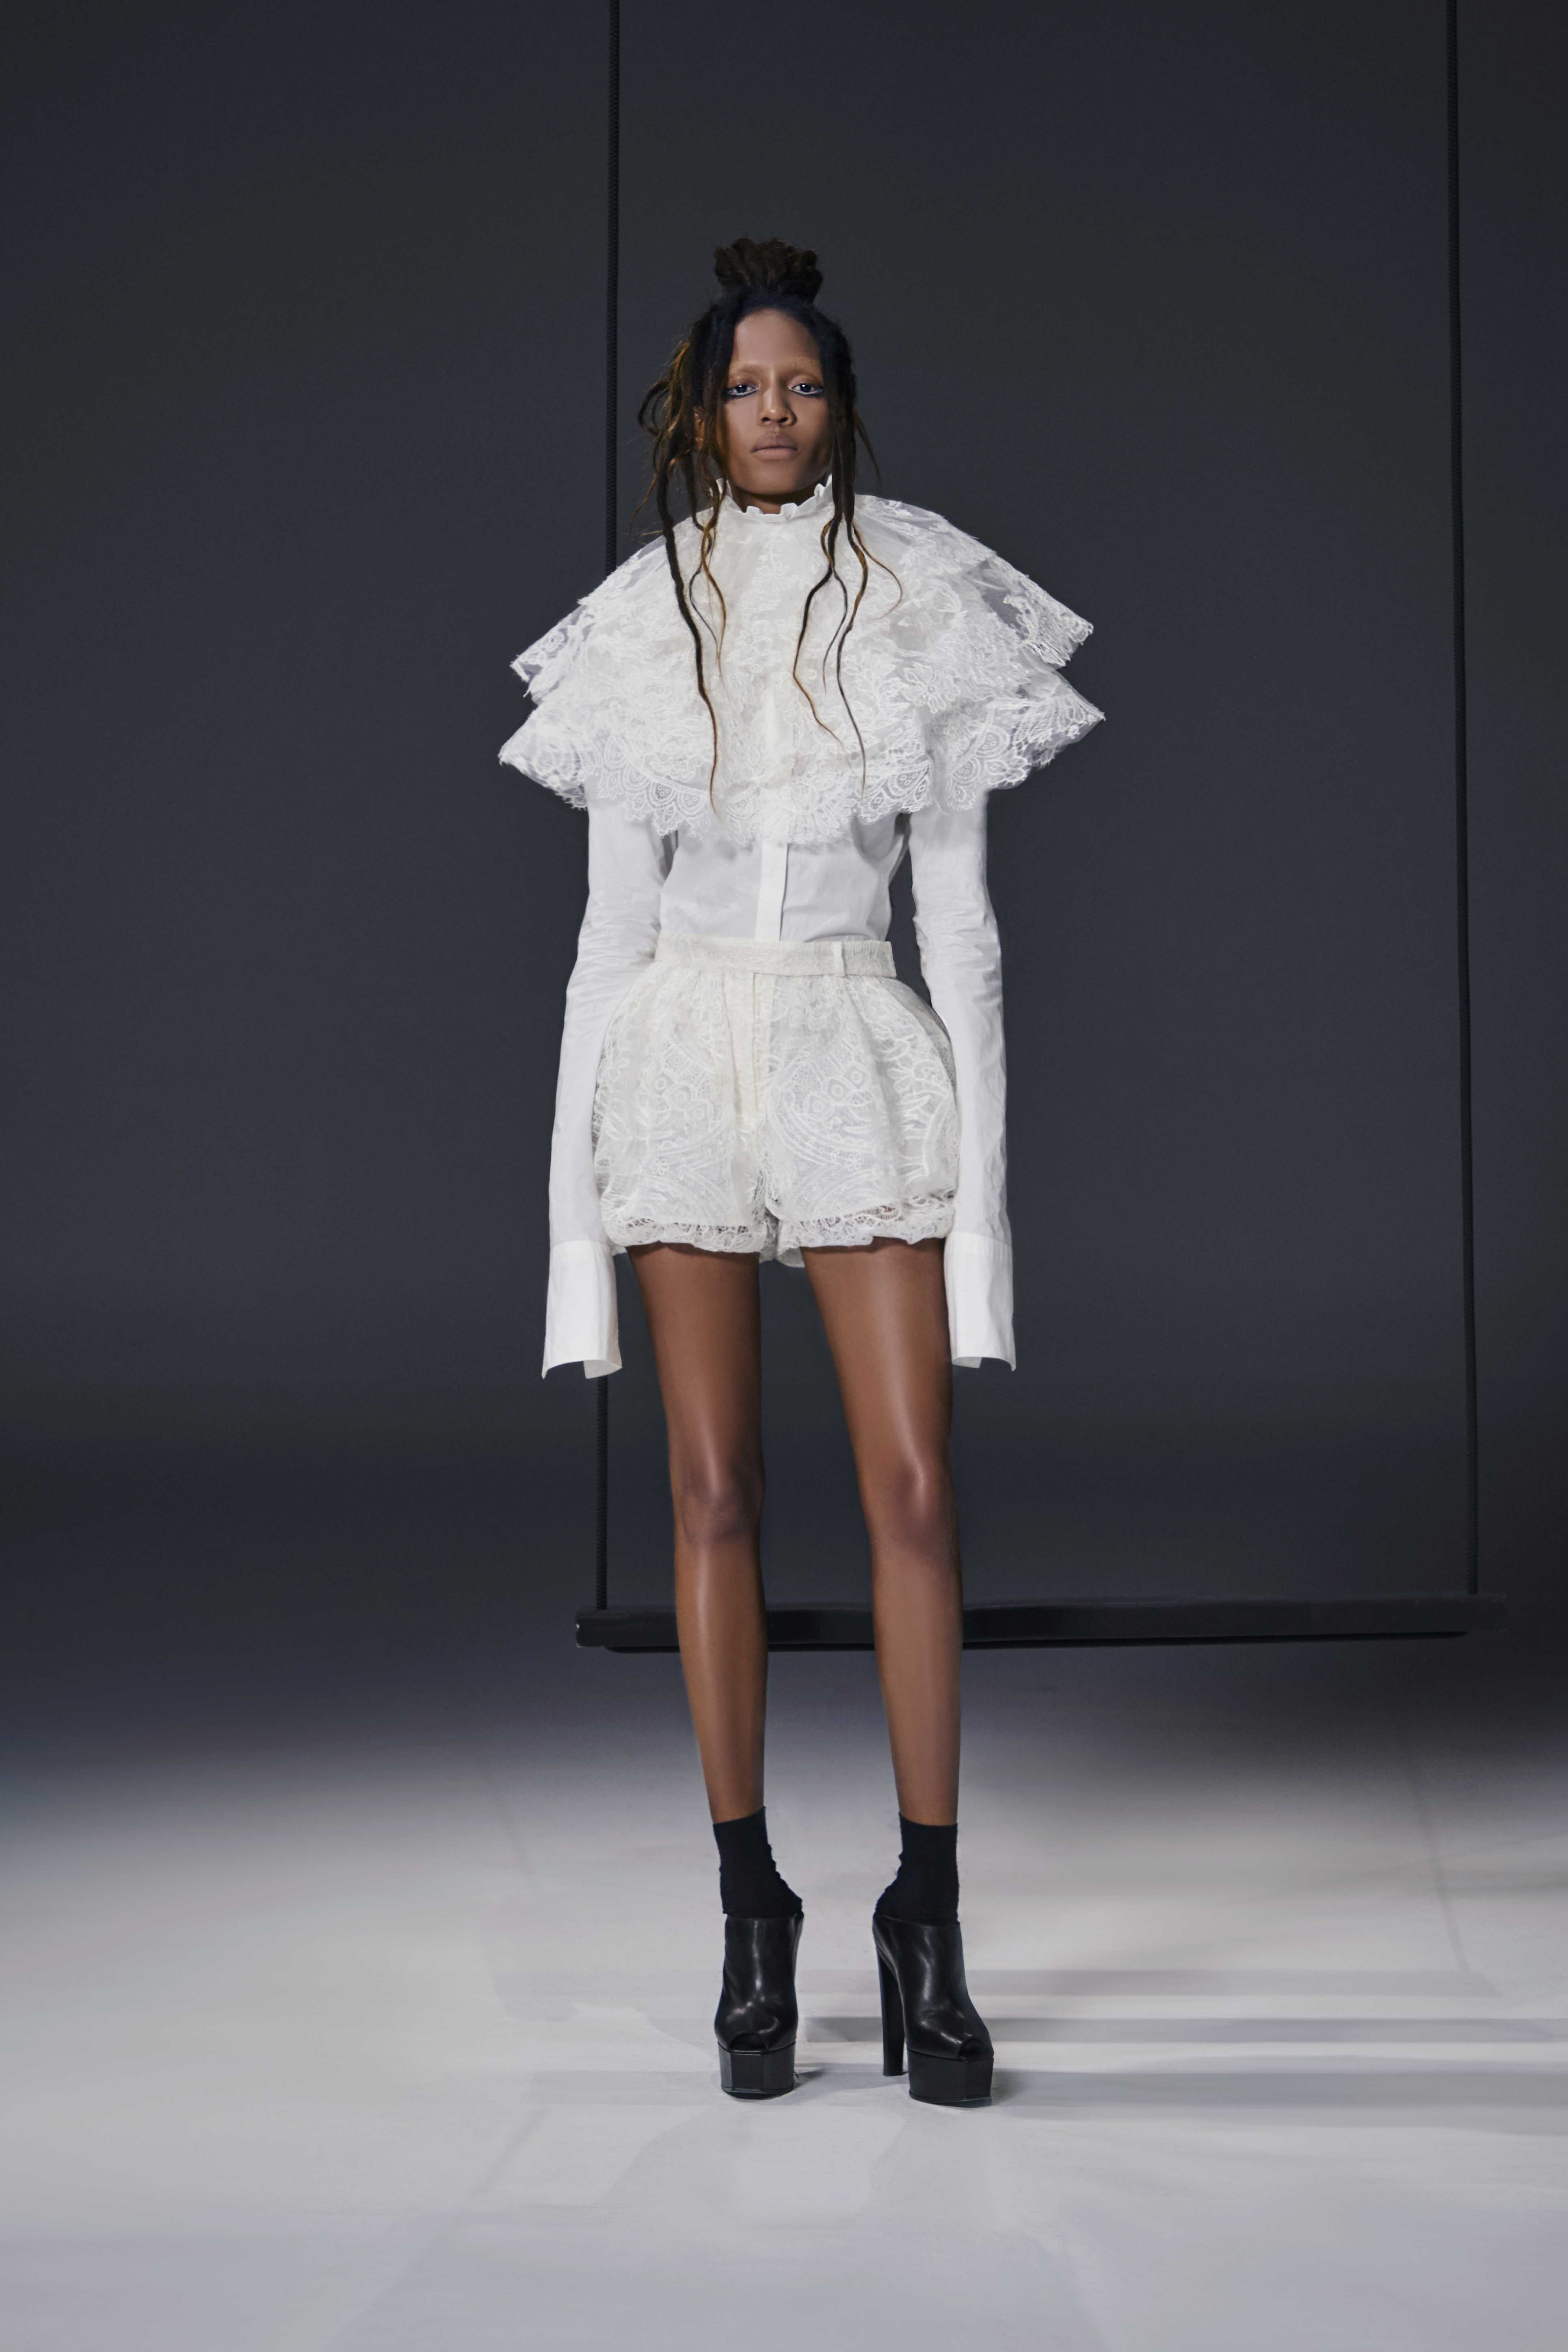 Vera Wang RTW Spring 2019 White cotton poplin men s shirt Light ivory  macramé lace bloomer Light ivory macramé lace exaggerated three tier collar cb2a33a08